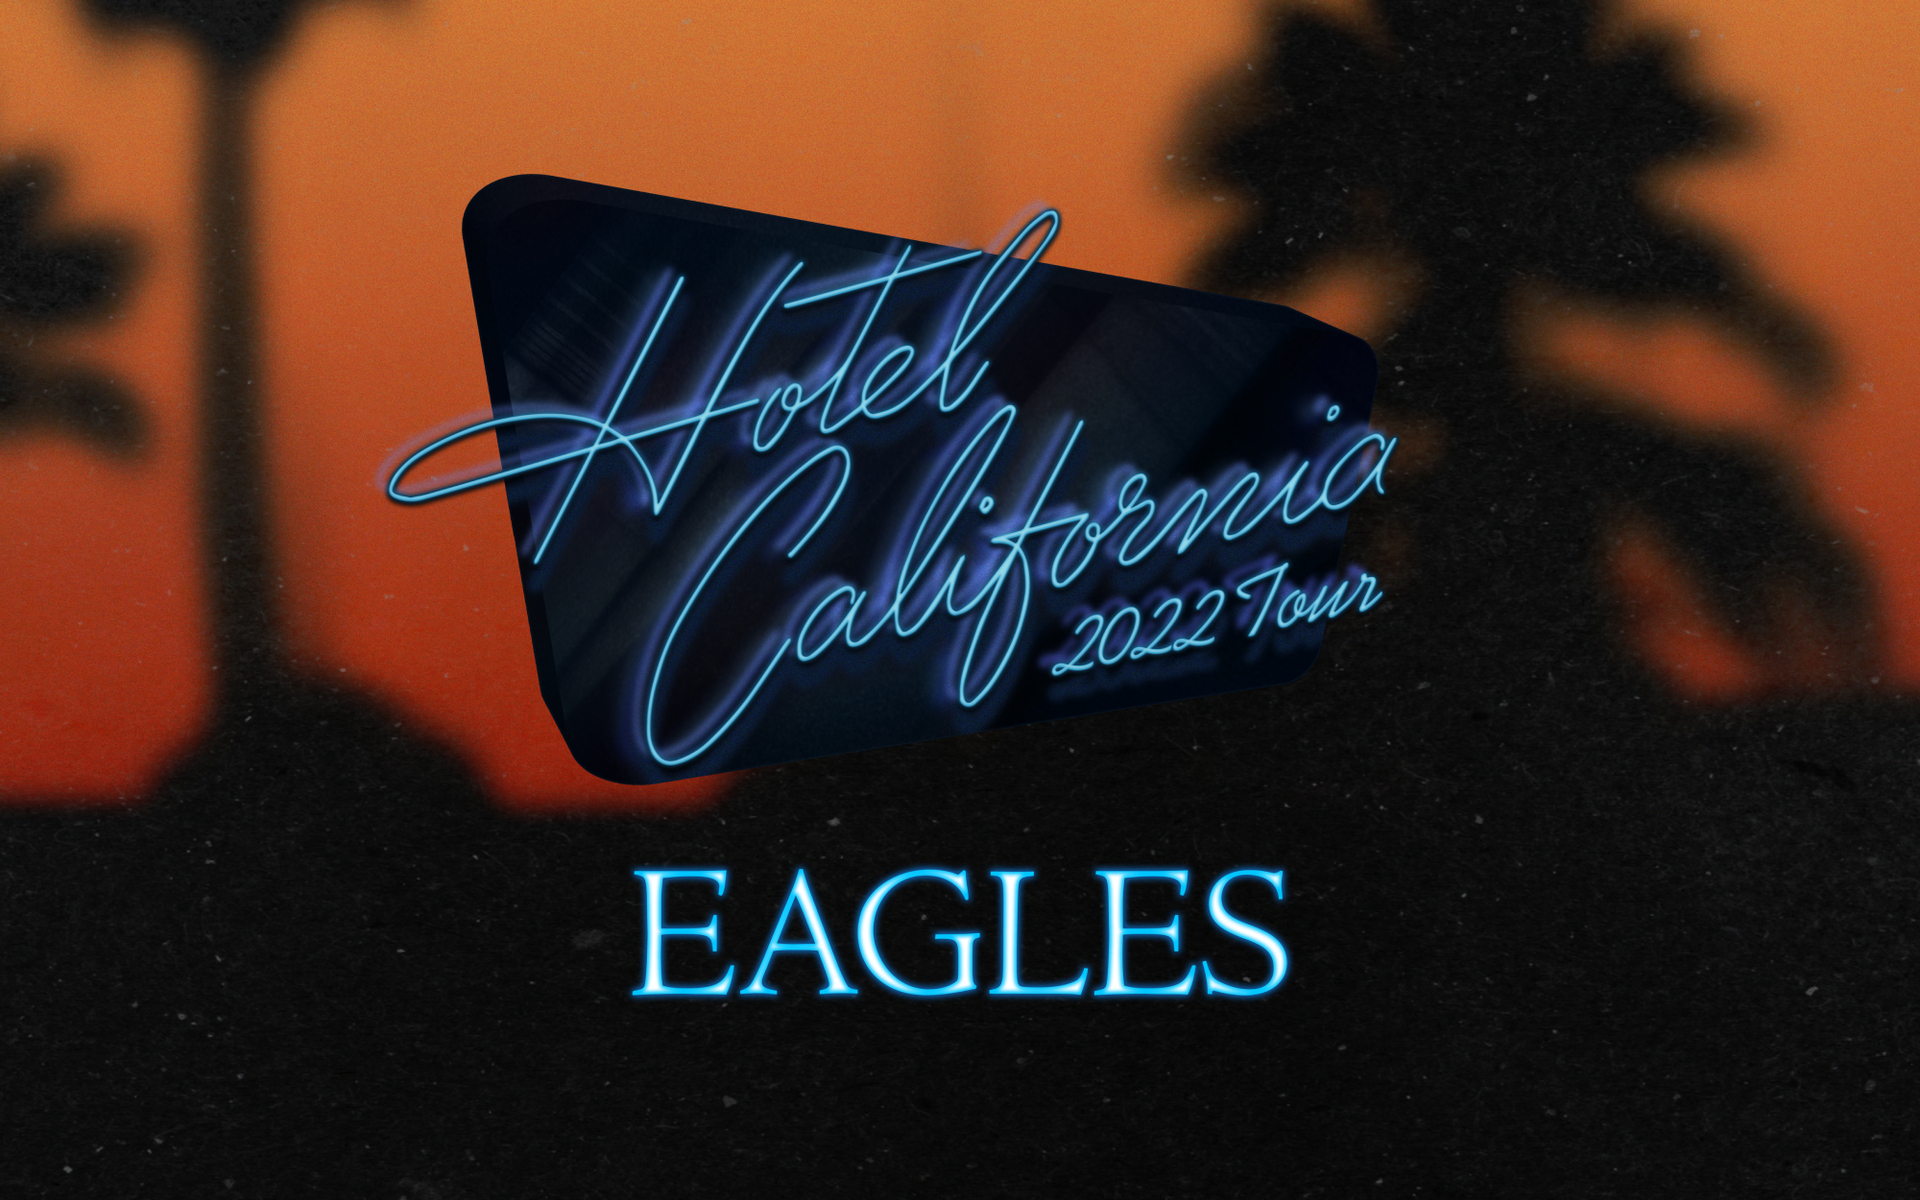 Eagles Cleveland October 10 20 2018 at Quicken Loans Arena Tickets